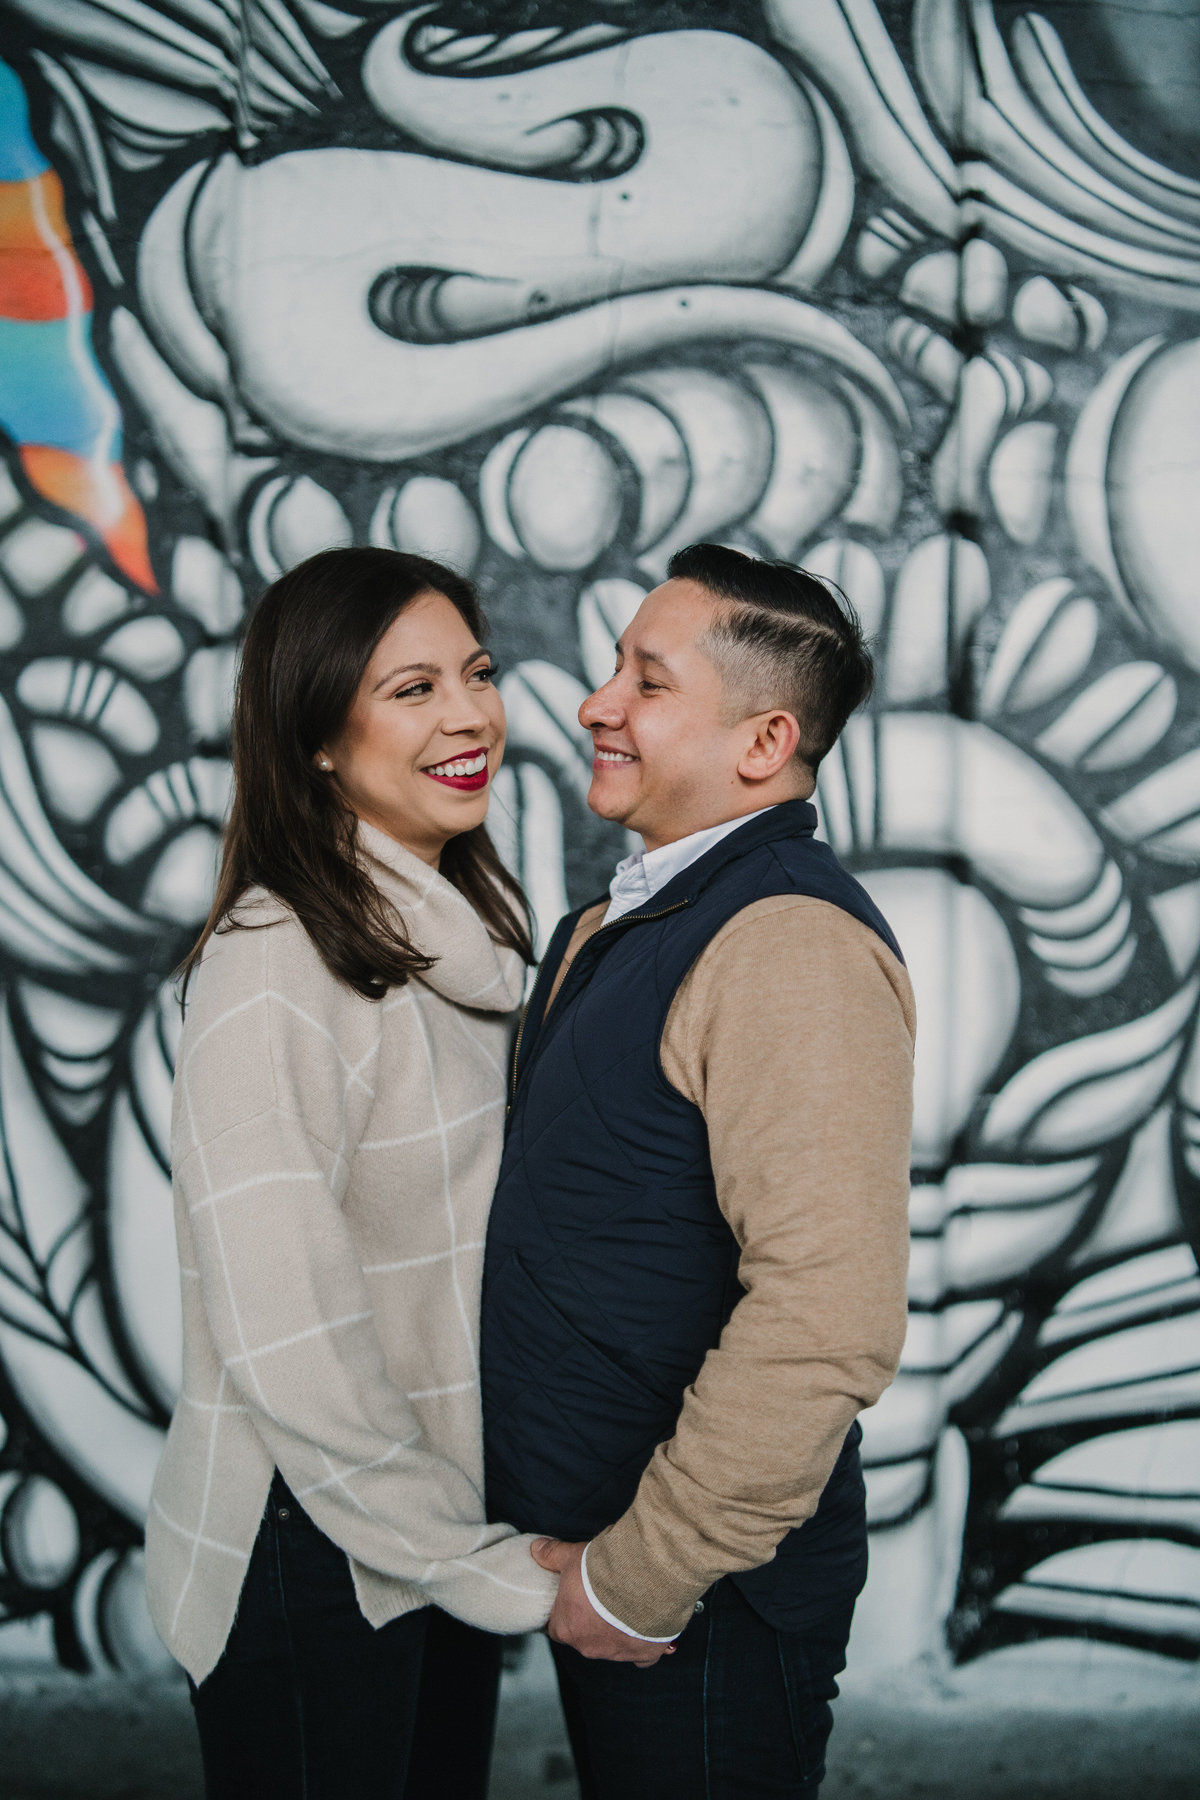 Couple's holiday portrait session downtown San Antonio taken by Expose The Heart Photography